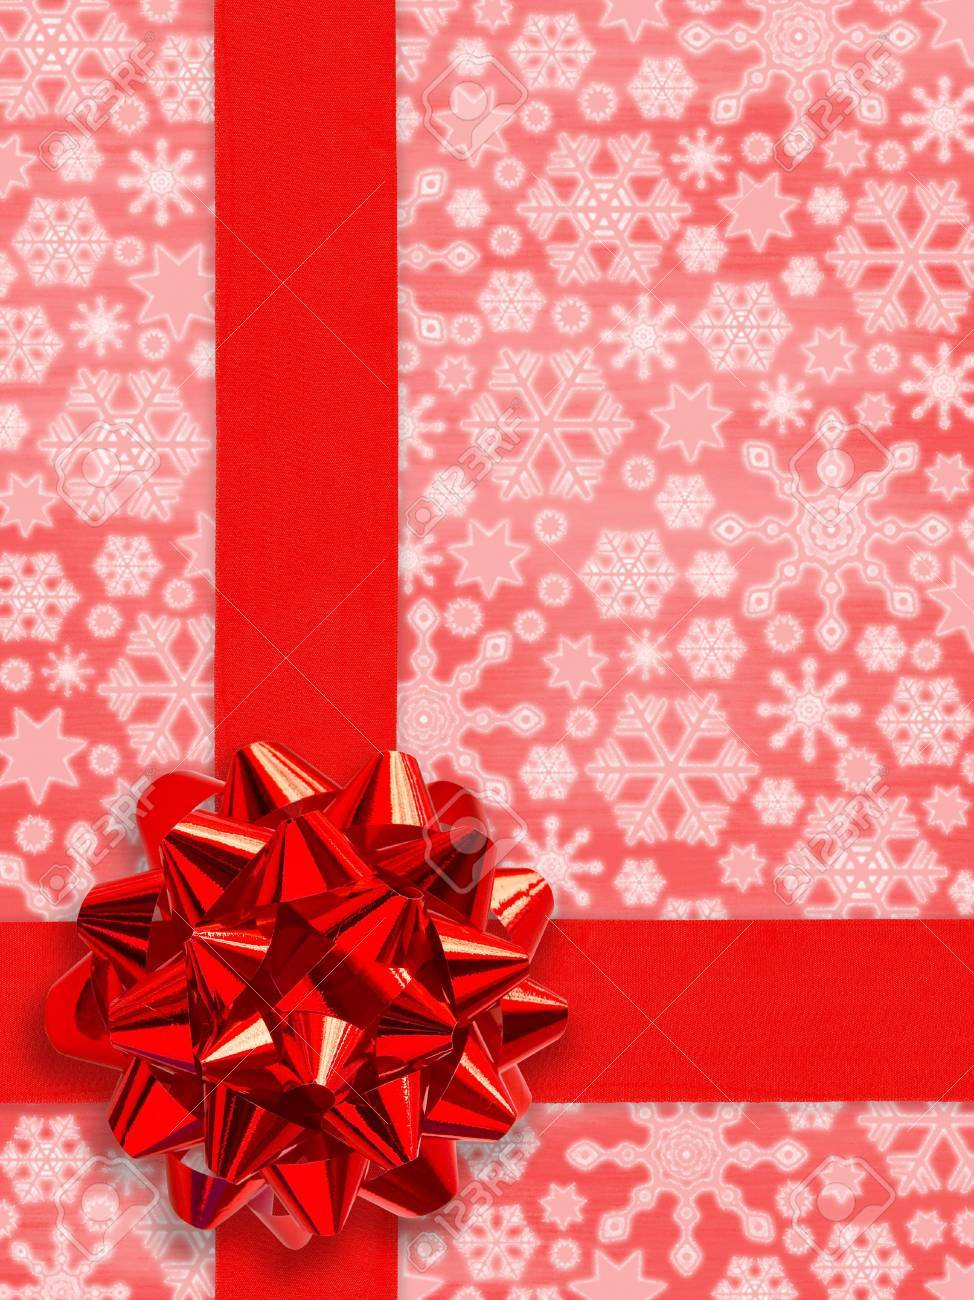 Christmas Present (Red Gift Ribbon Over Snowflakes Background (with clipping path for easy picking out the ribbon)) Stock Photo - 633282